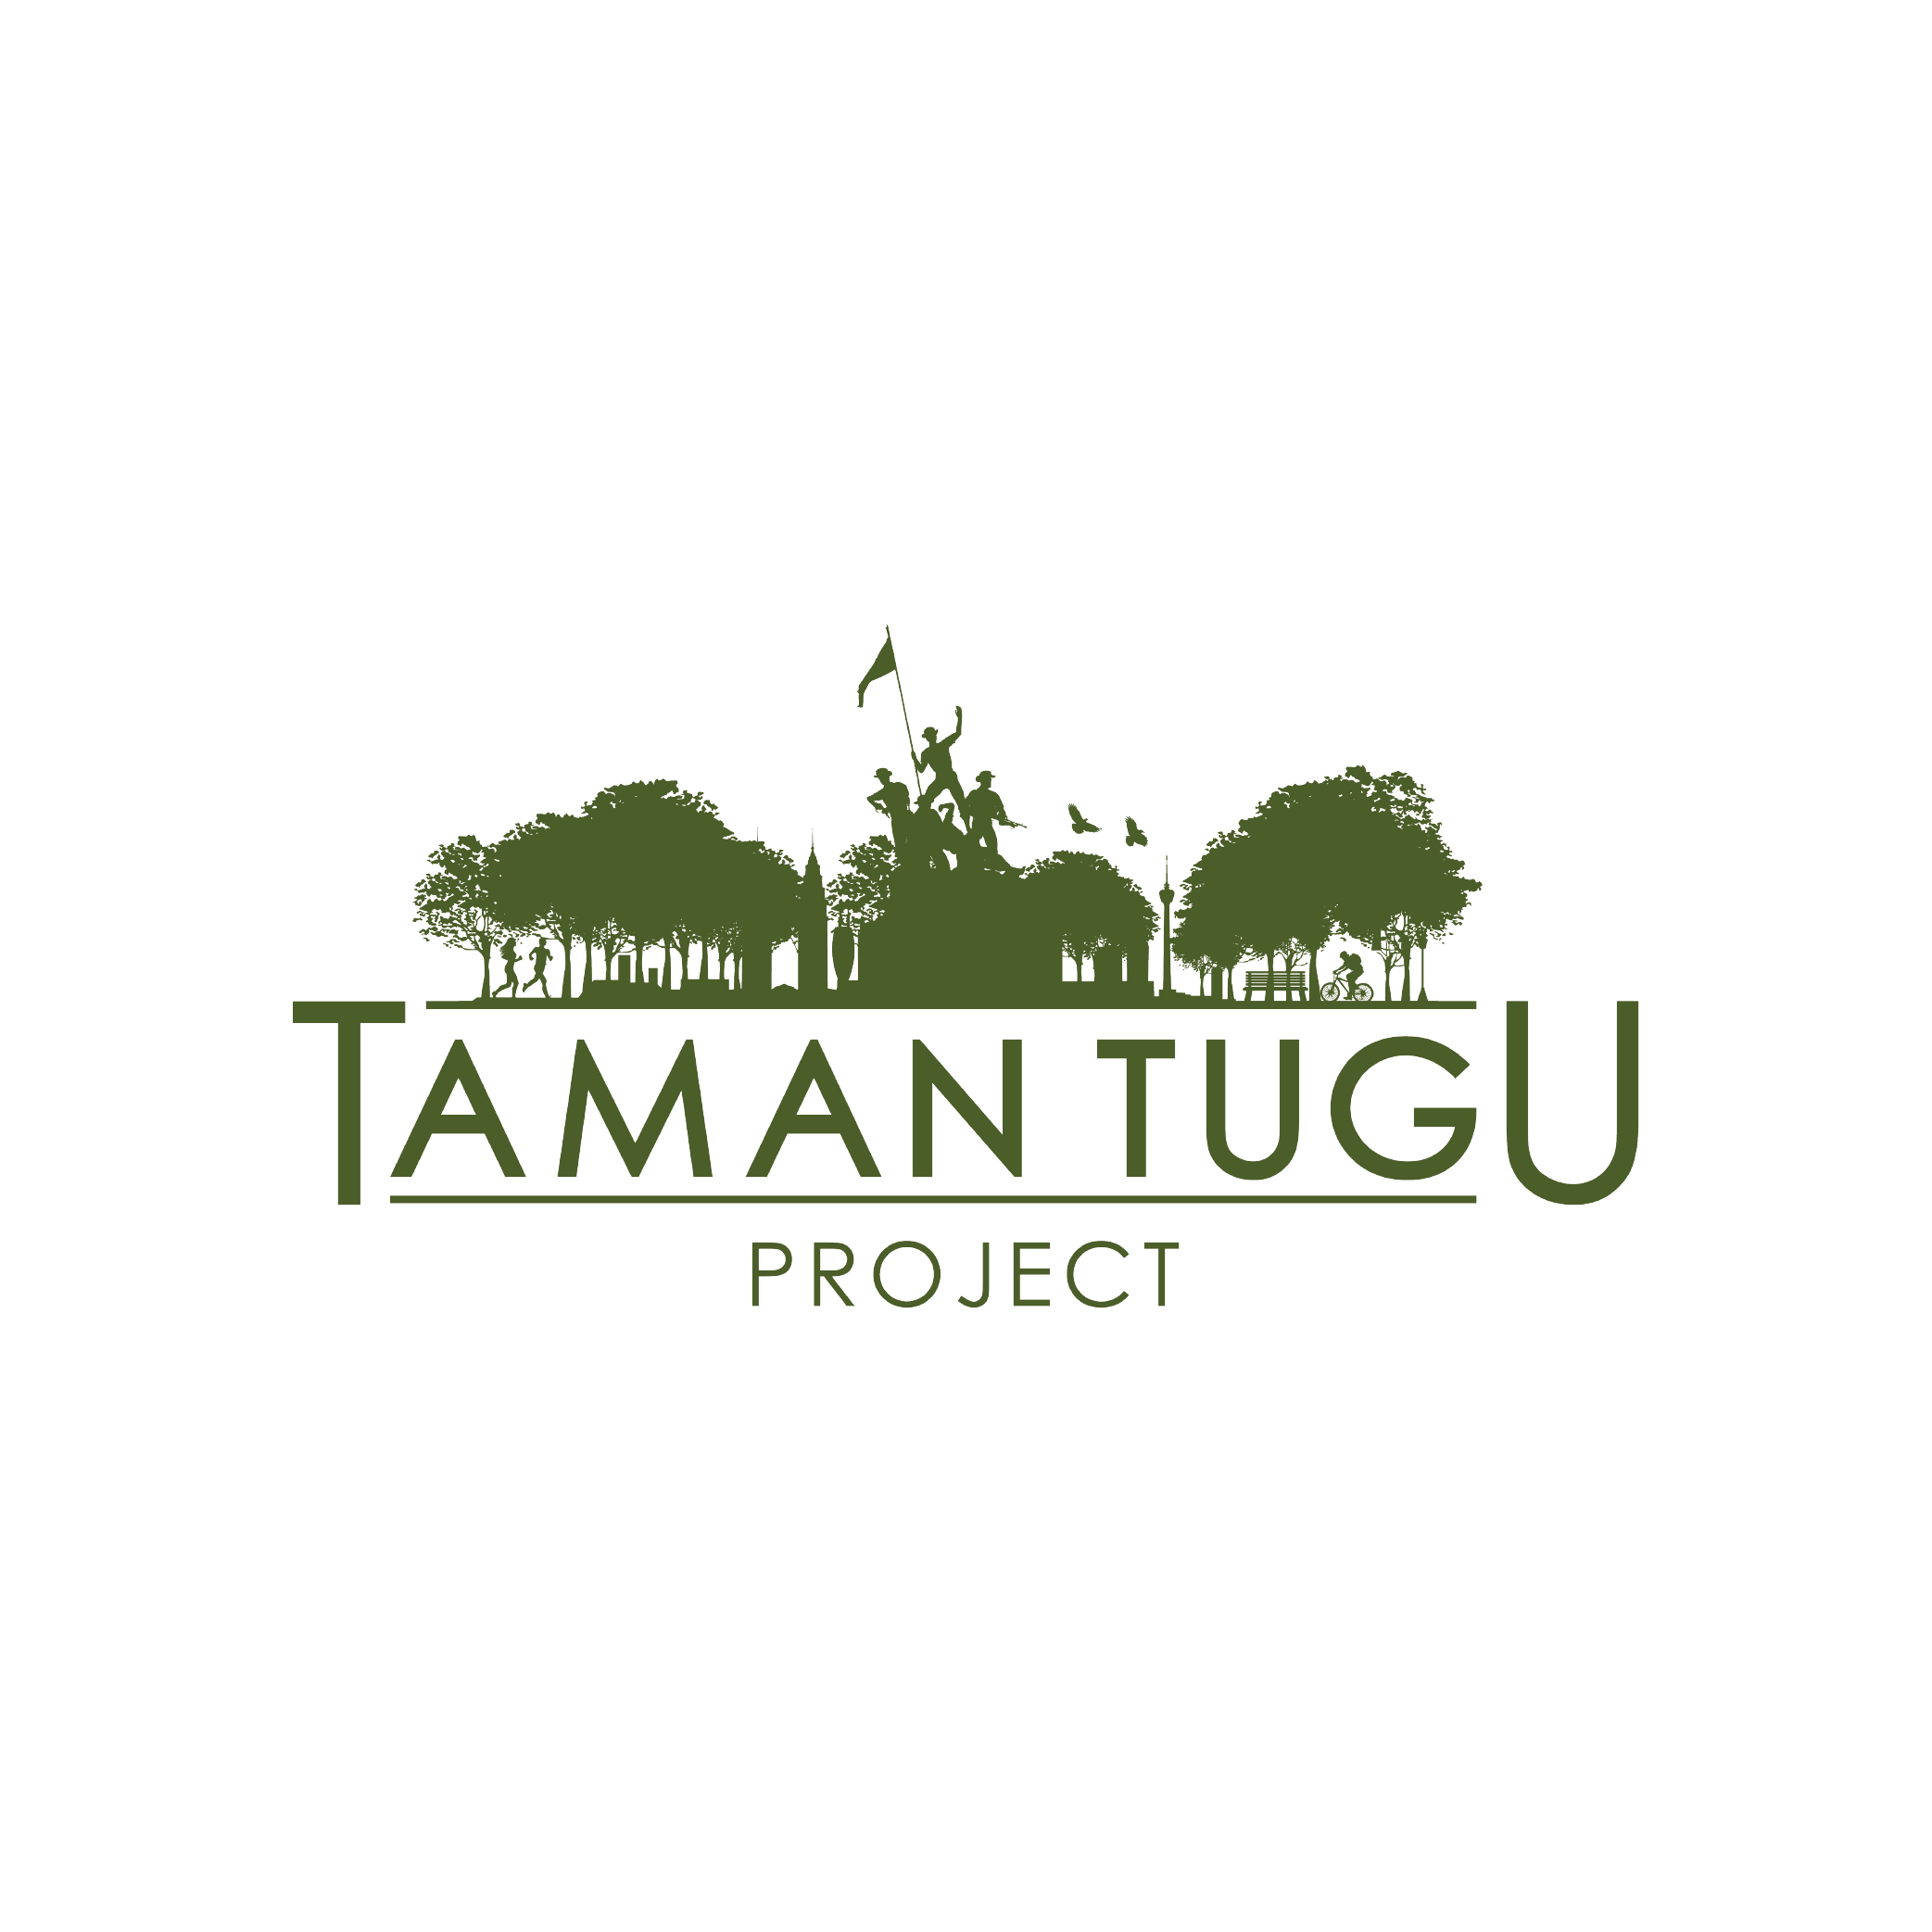 200219_ logo for website_Taman Tugu Project